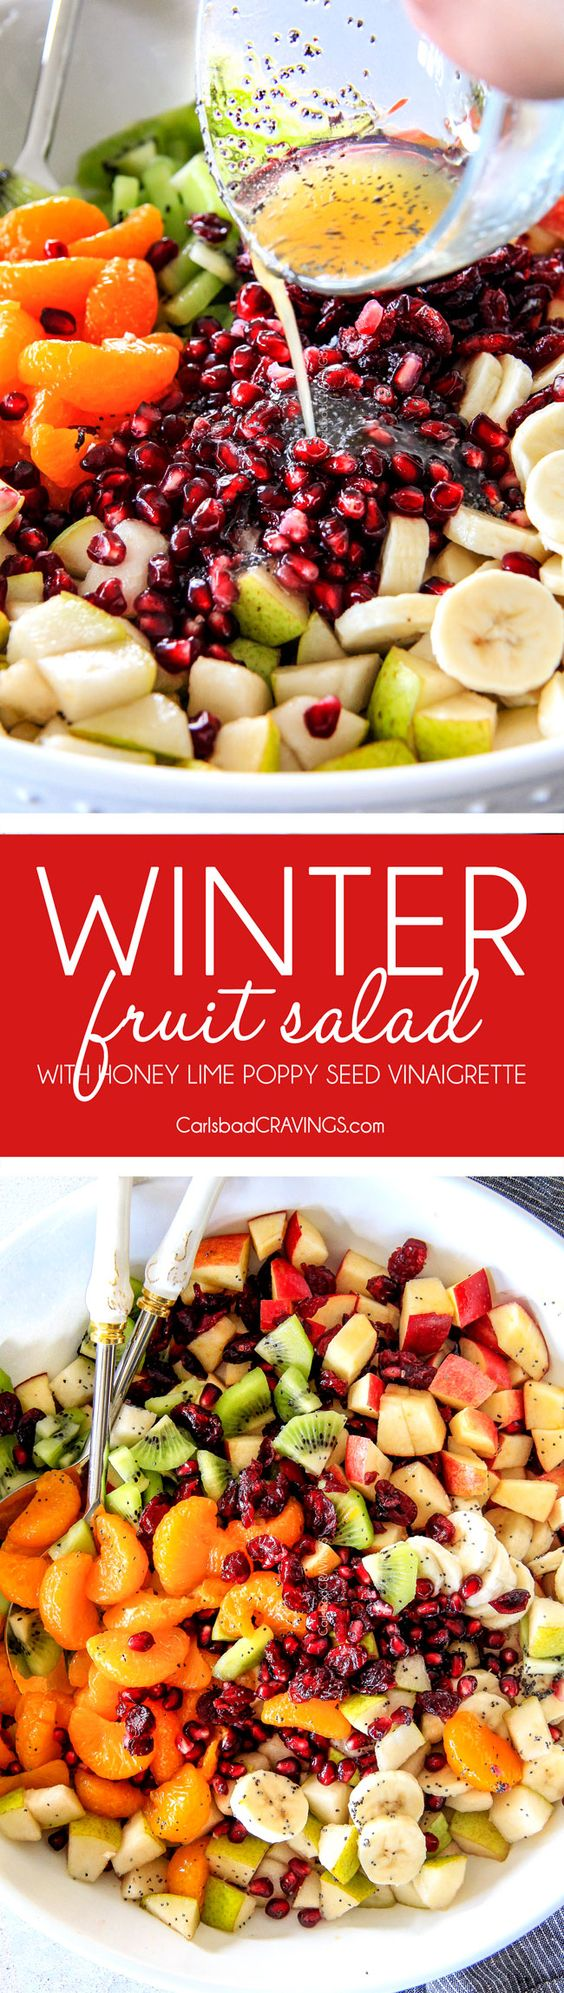 Irresistibly delicious, fresh and vibrant Winter Fruit Salad with Honey Lime Poppy Seed Vinaigrette is simple to whip together but can't stop eating delicious! It makes the perfect Thanksgiving or Christmas side! #fruitsalad #thanksgivingsides